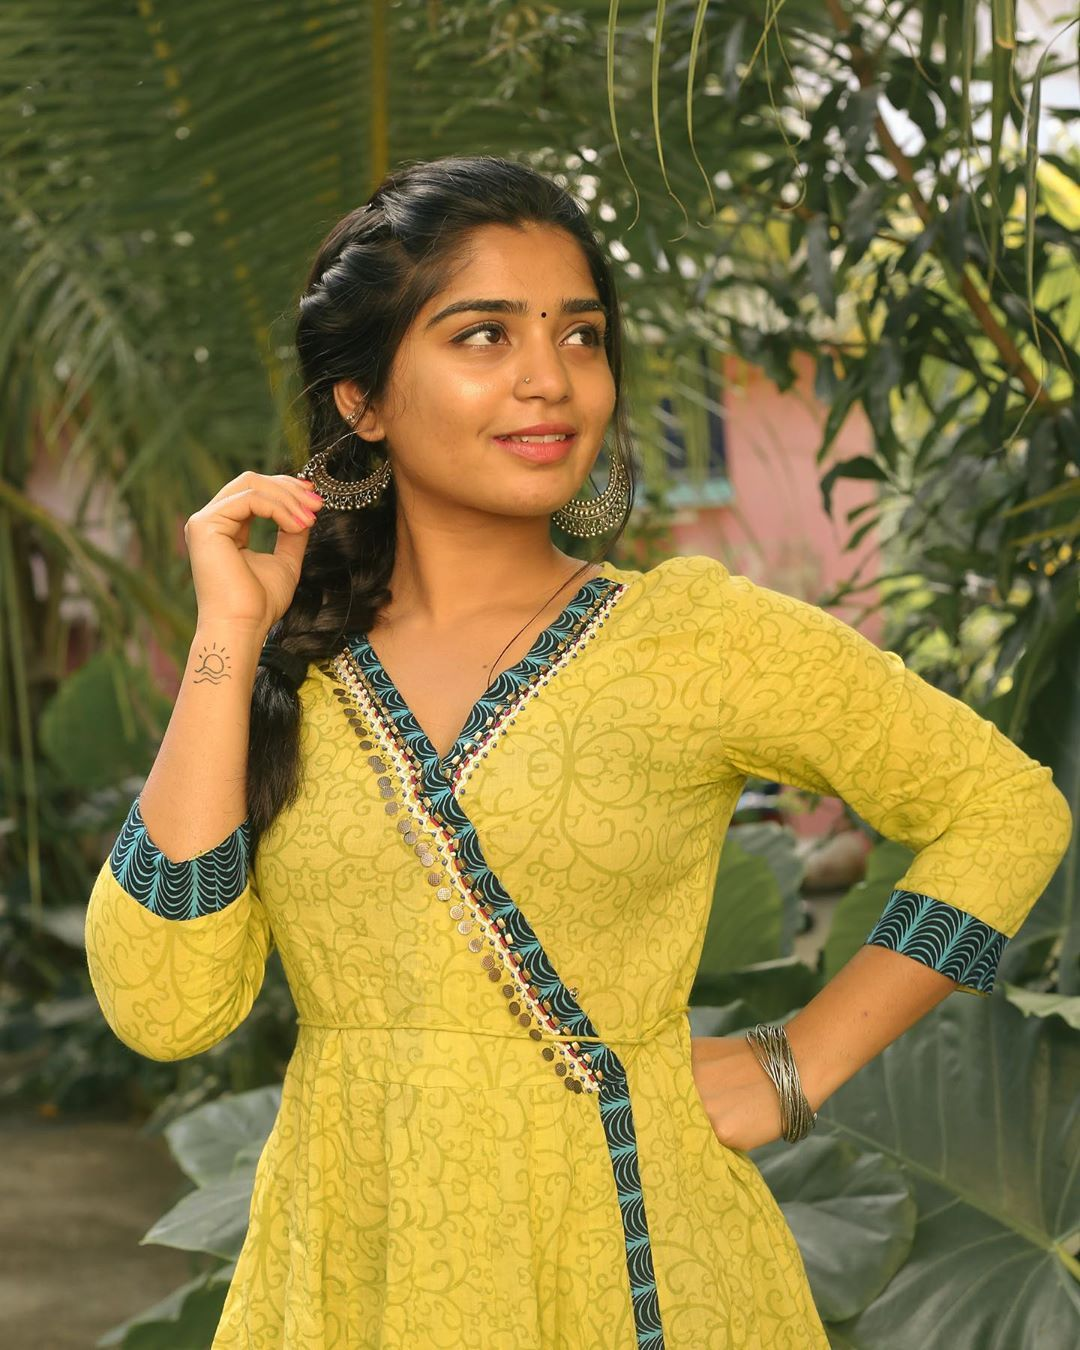 59 1k Likes 246 Comments Gouri G Kishan Gourigkofficial On Instagram A Well Cared For Ruin Fashion Dresses Casual Frock For Women Kalamkari Dresses